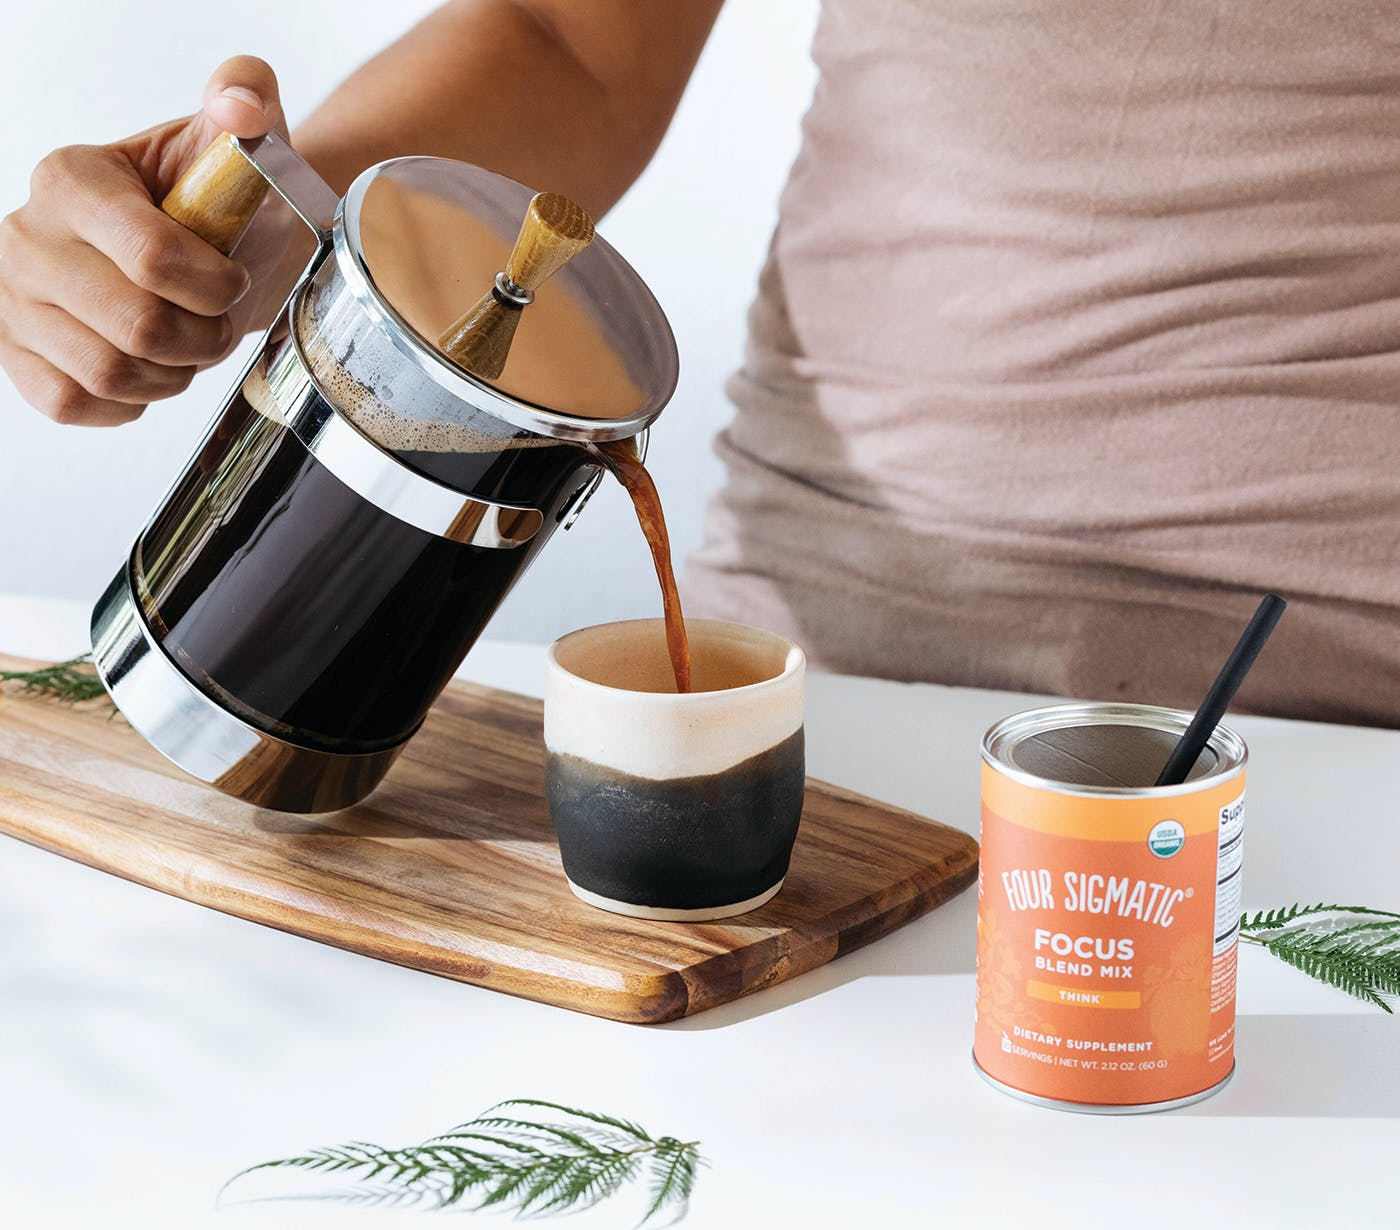 Pouring Focus Blend